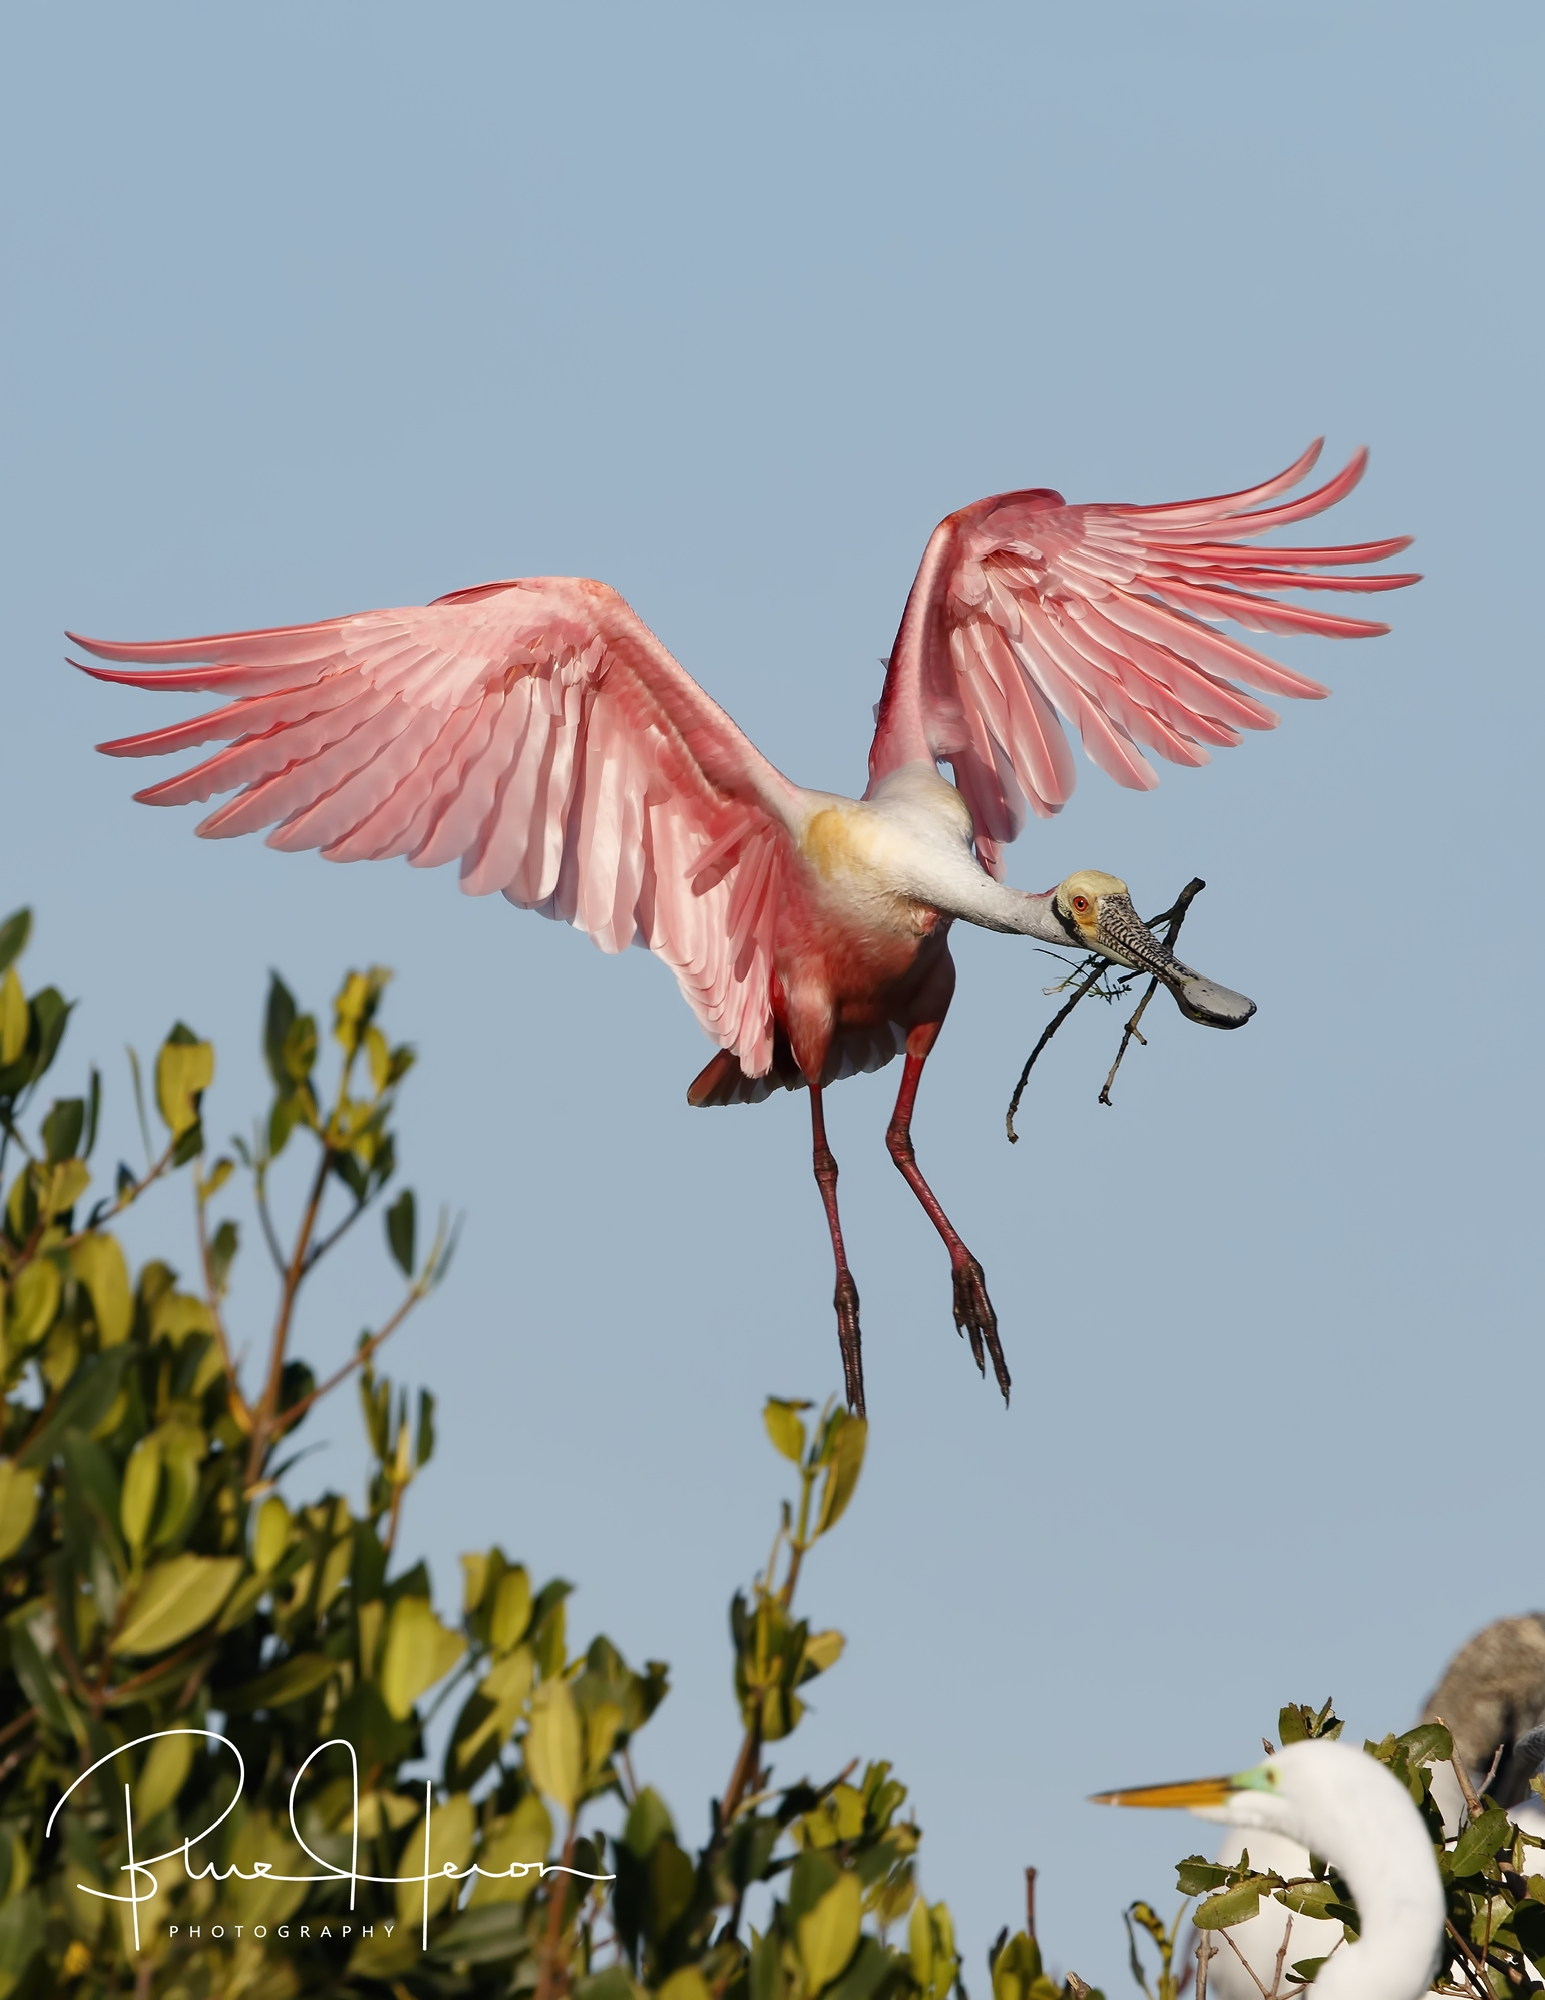 This Roseate Spoonbill brings another stick and carefully lands among the bird covered branches below.